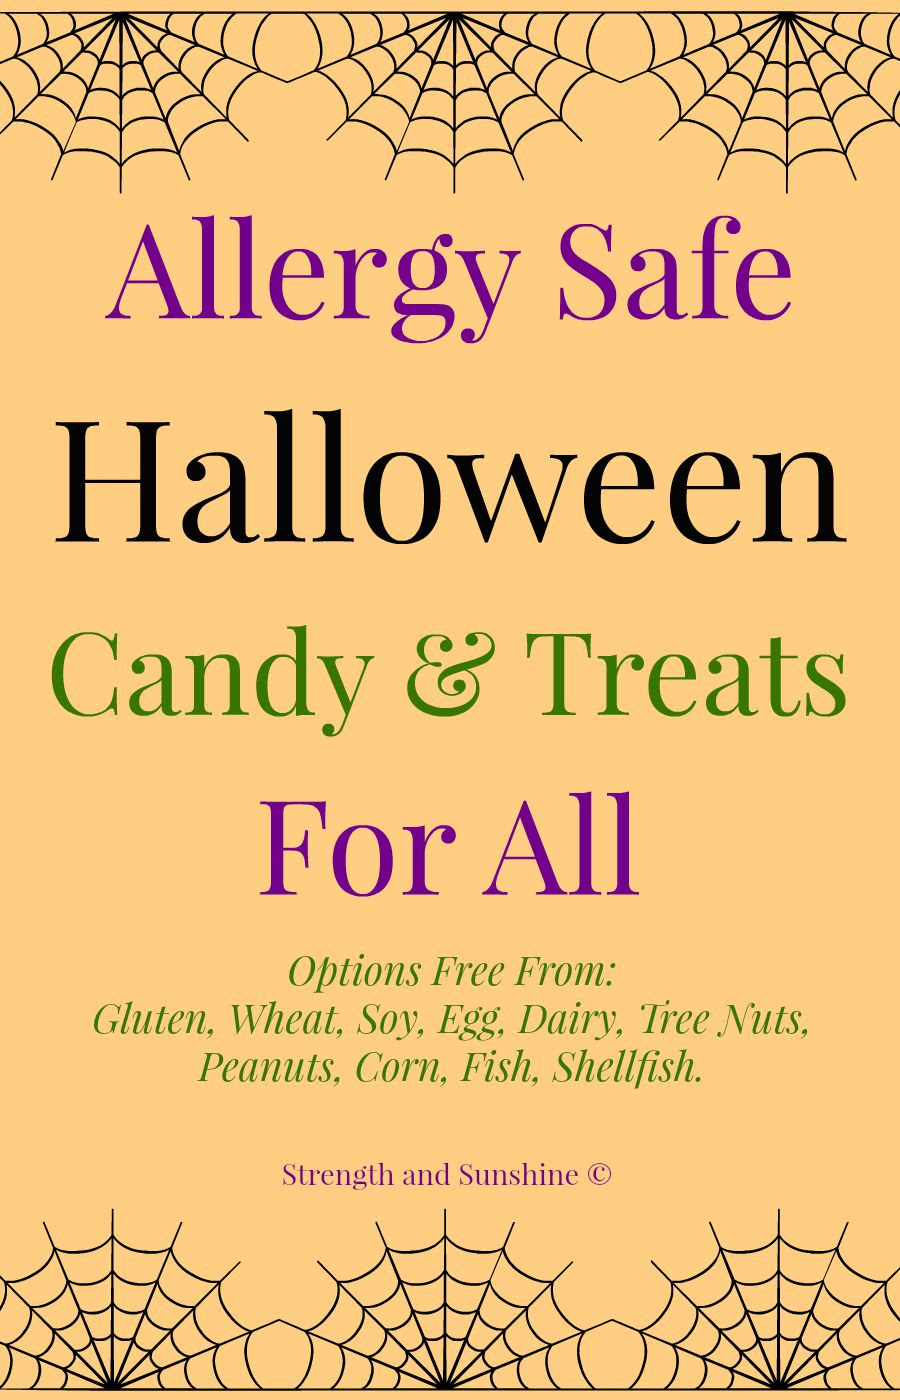 Allergy Safe Halloween Candy & Treats For All | Strength and Sunshine @RebeccaGF666 Options Free From: Gluten, Wheat, Soy, Egg, Dairy, Tree Nuts, Peanuts, Corn, Fish, Shellfish.